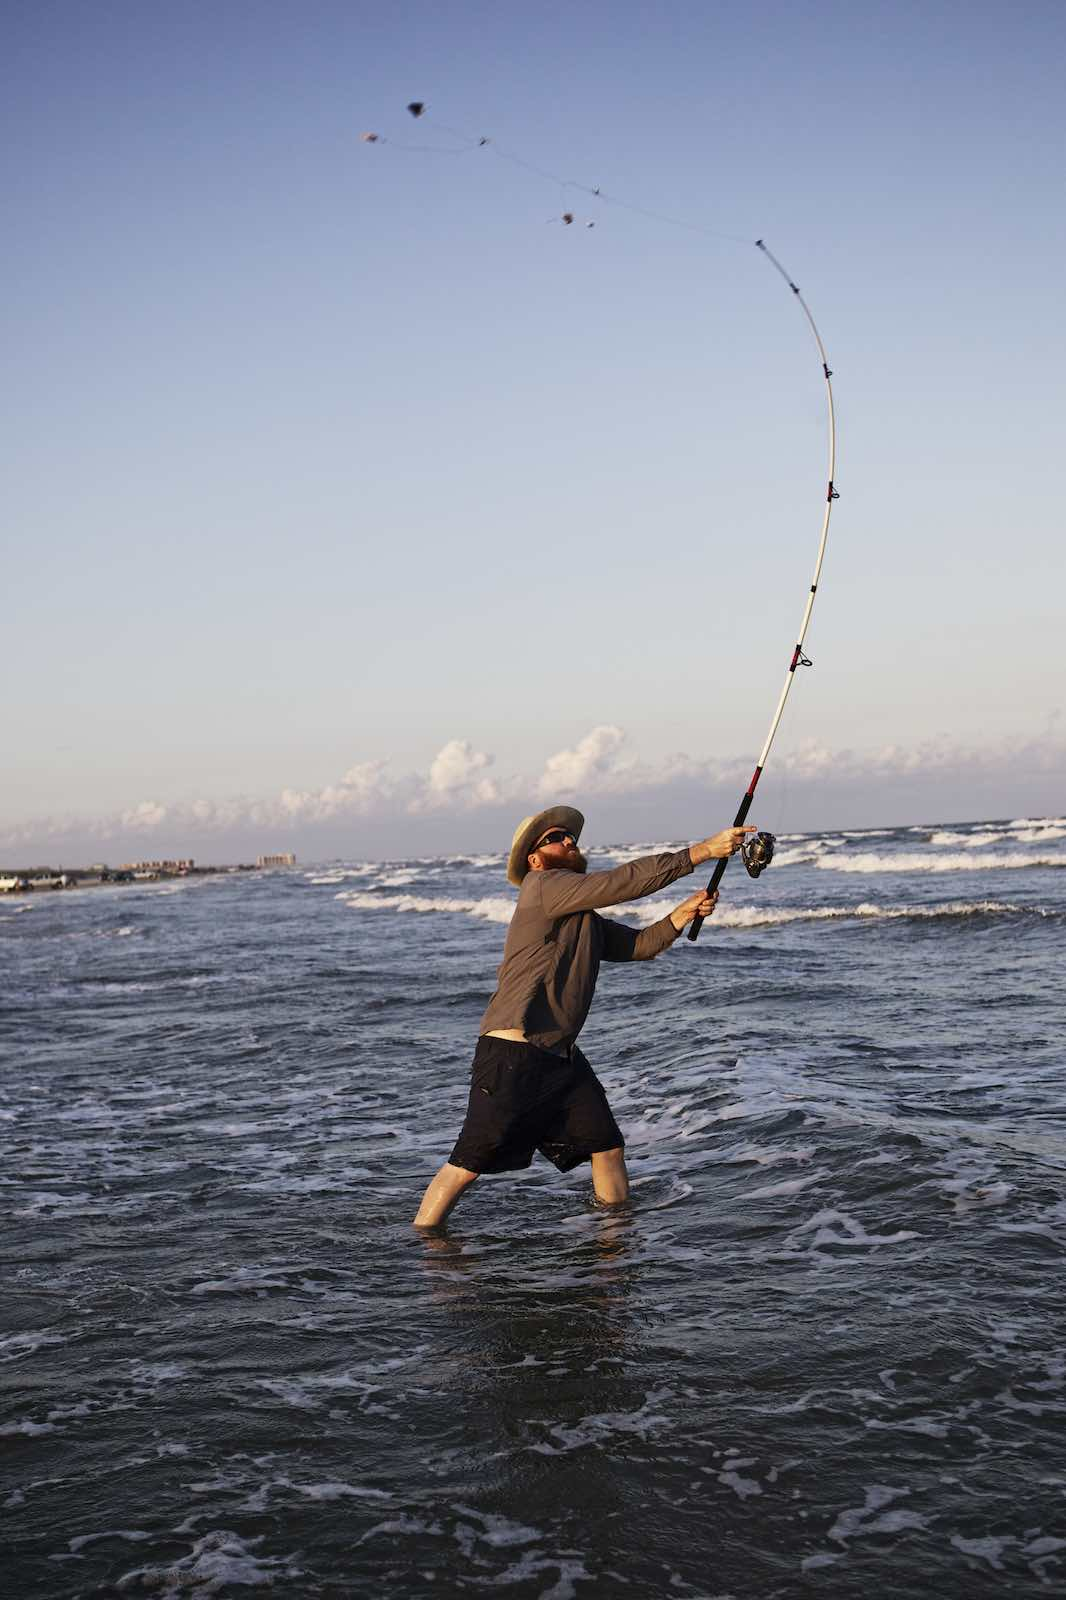 Jody Horton Photography - Chef Jesse casting a fishing line on the beach.